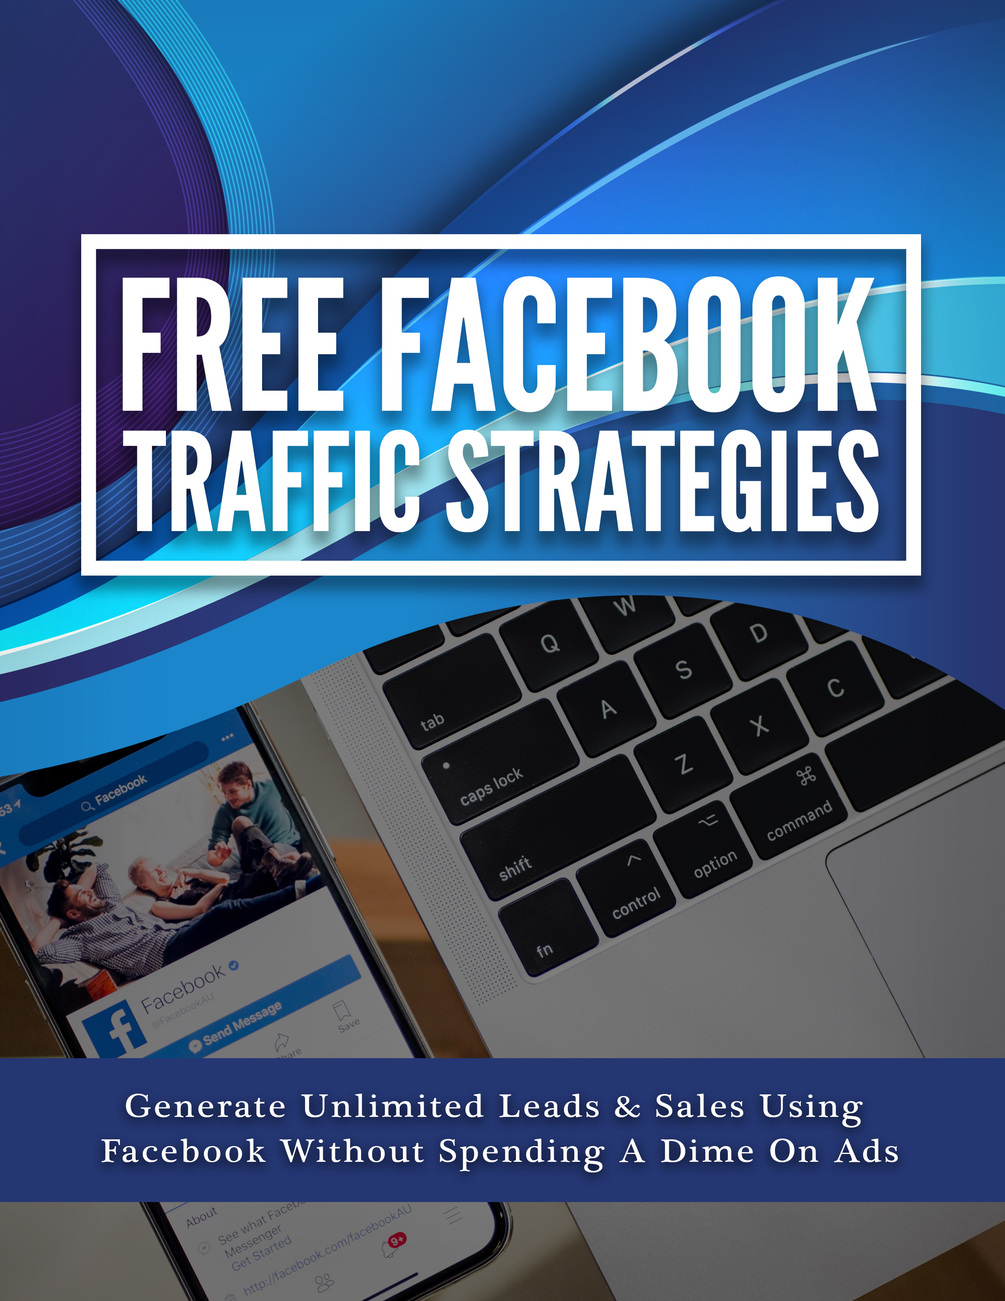 Give You Free Traffic Strategies